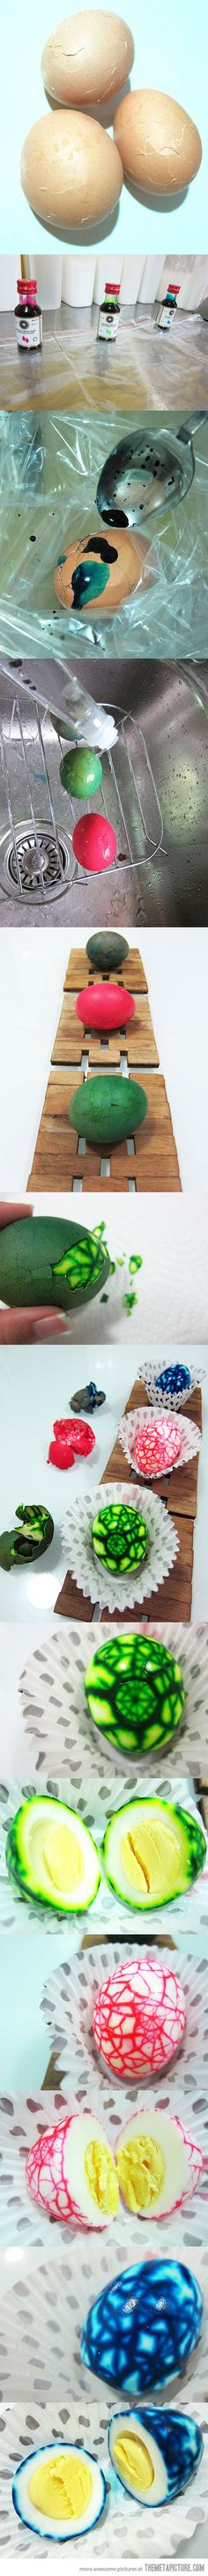 dinosaur eggs/Easter eggs~love